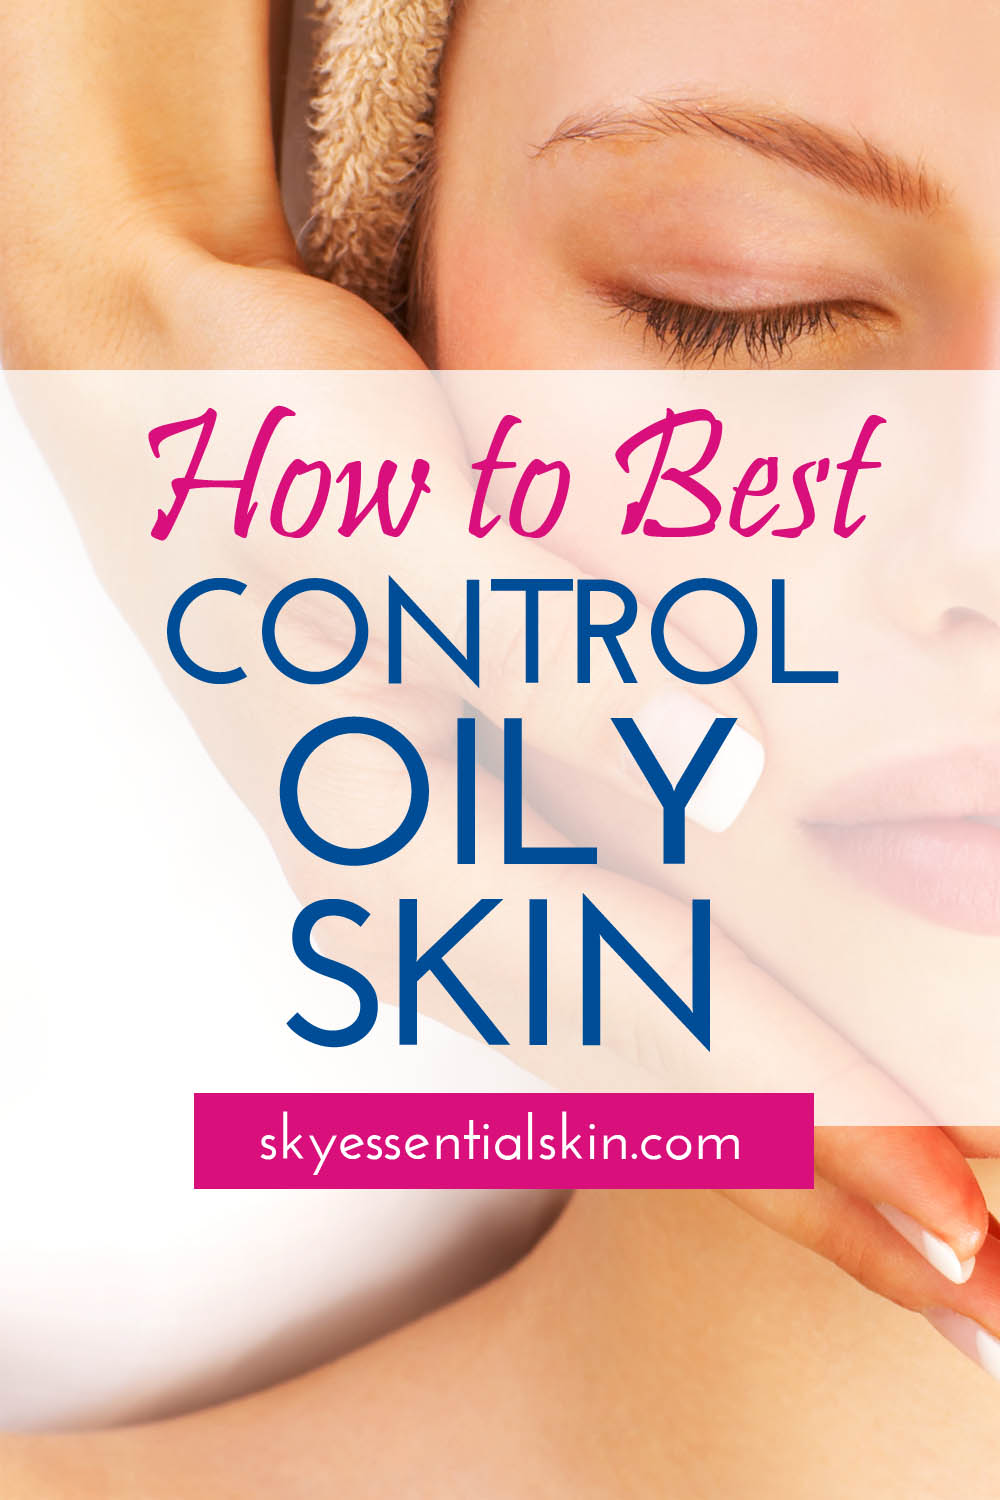 How to Best Control Oily Skin